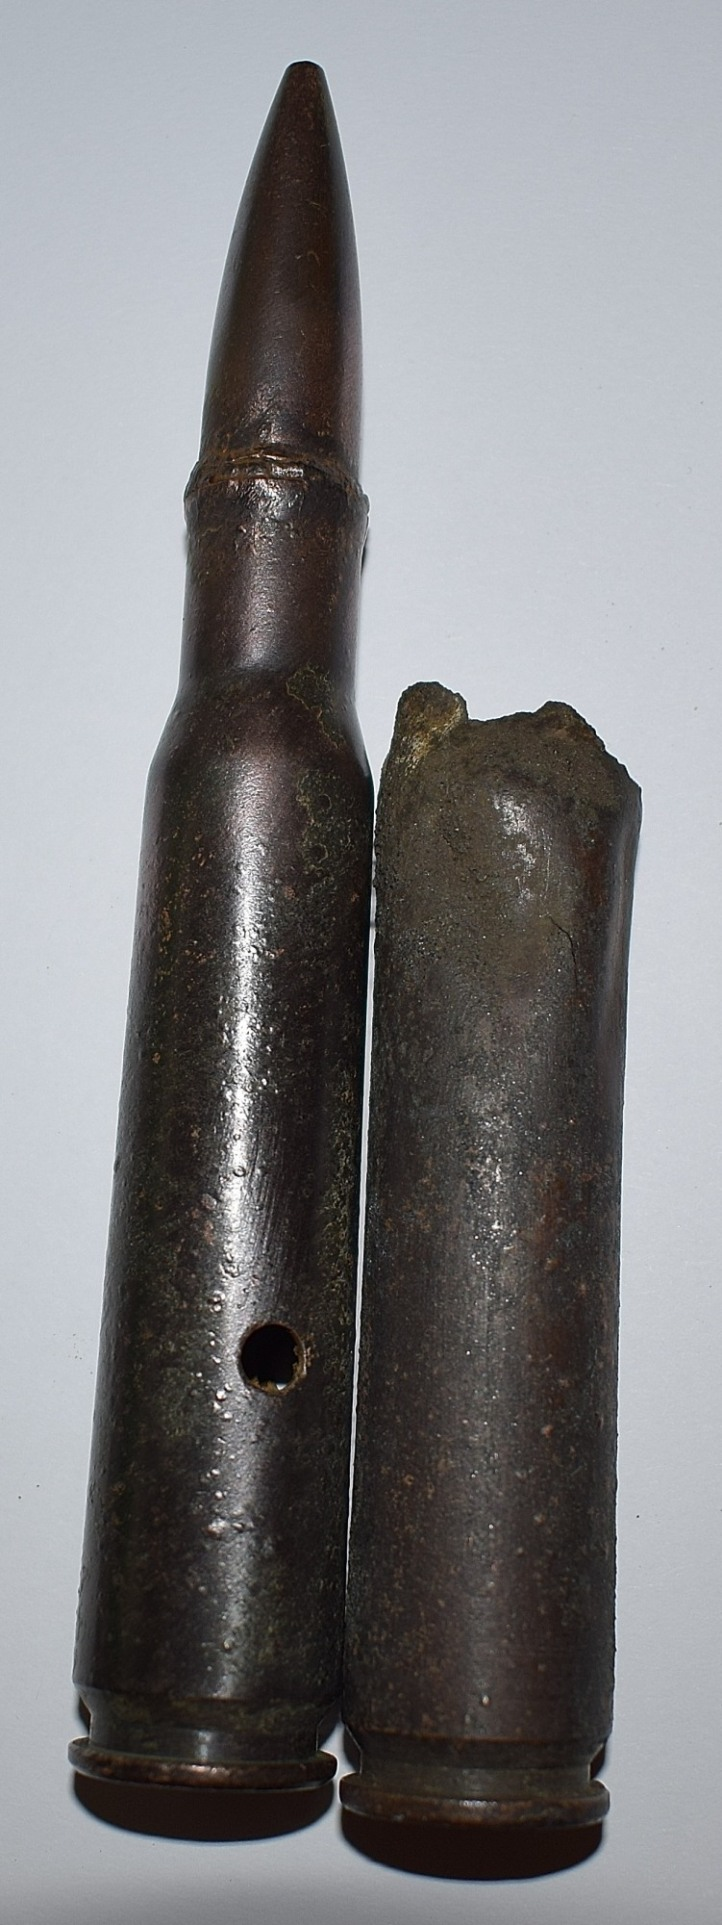 50cal cartridge cases